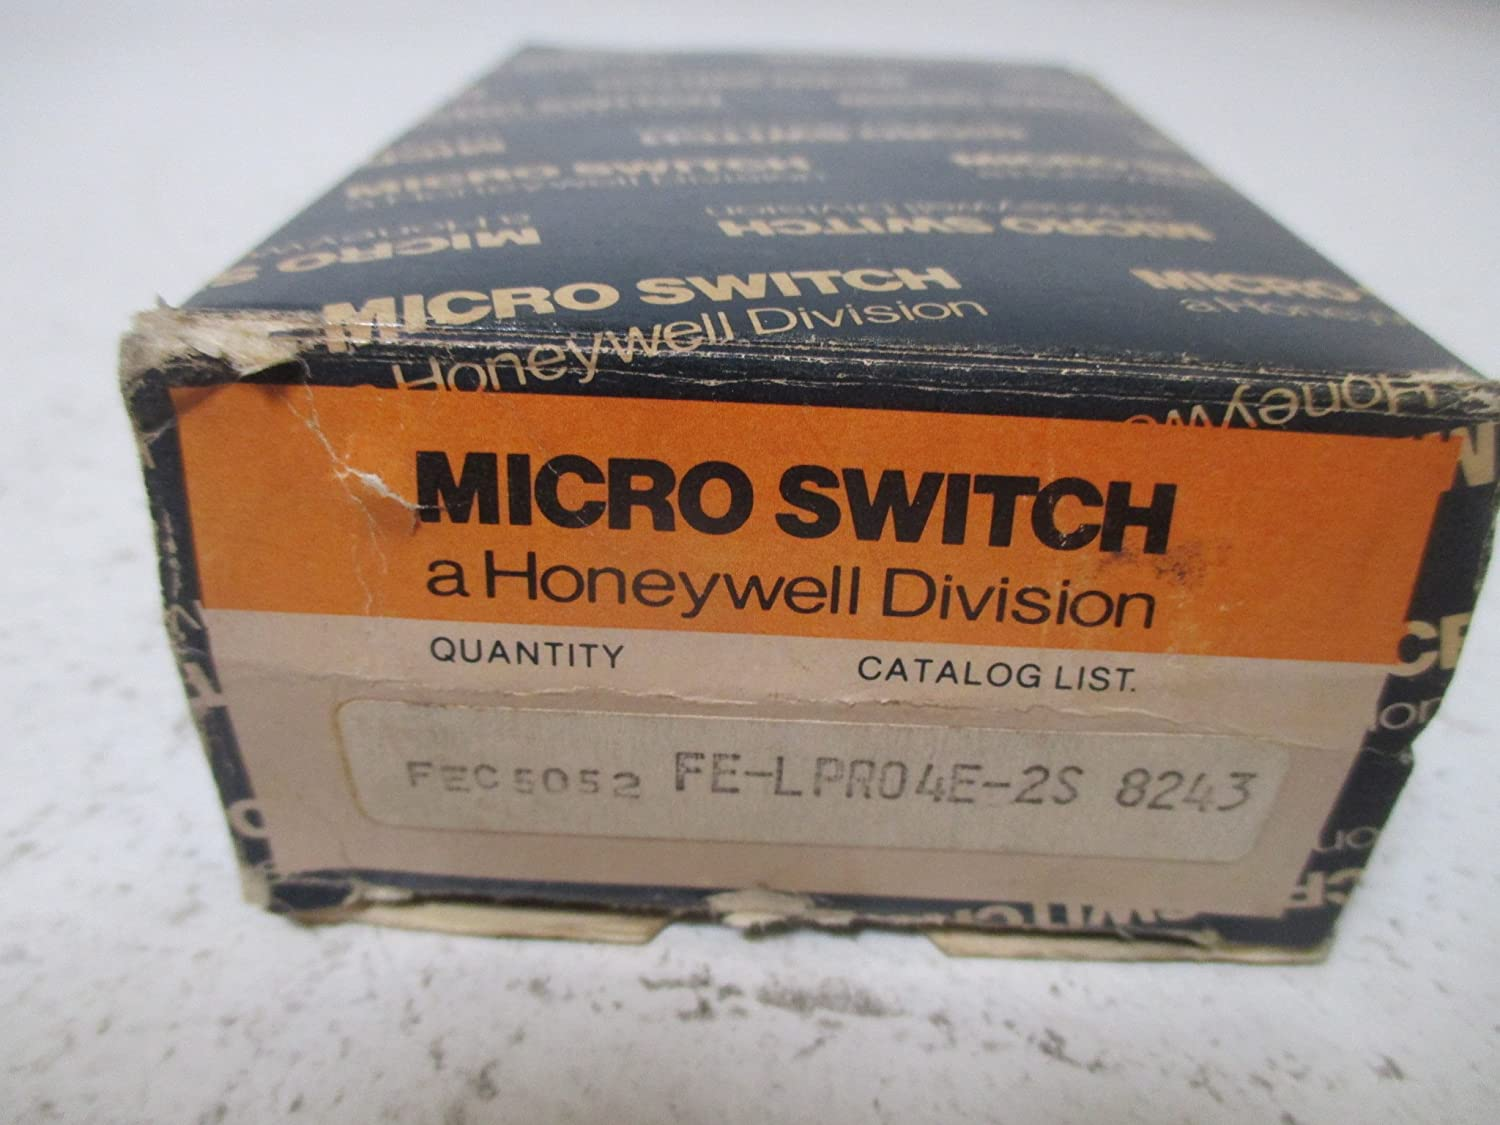 MICROSWITCH FE-LPR04E-2S Photo Electric Sensor, Modular PHOTOELECTRIC System, Discontinued by Manufacturer, Heavy Duty